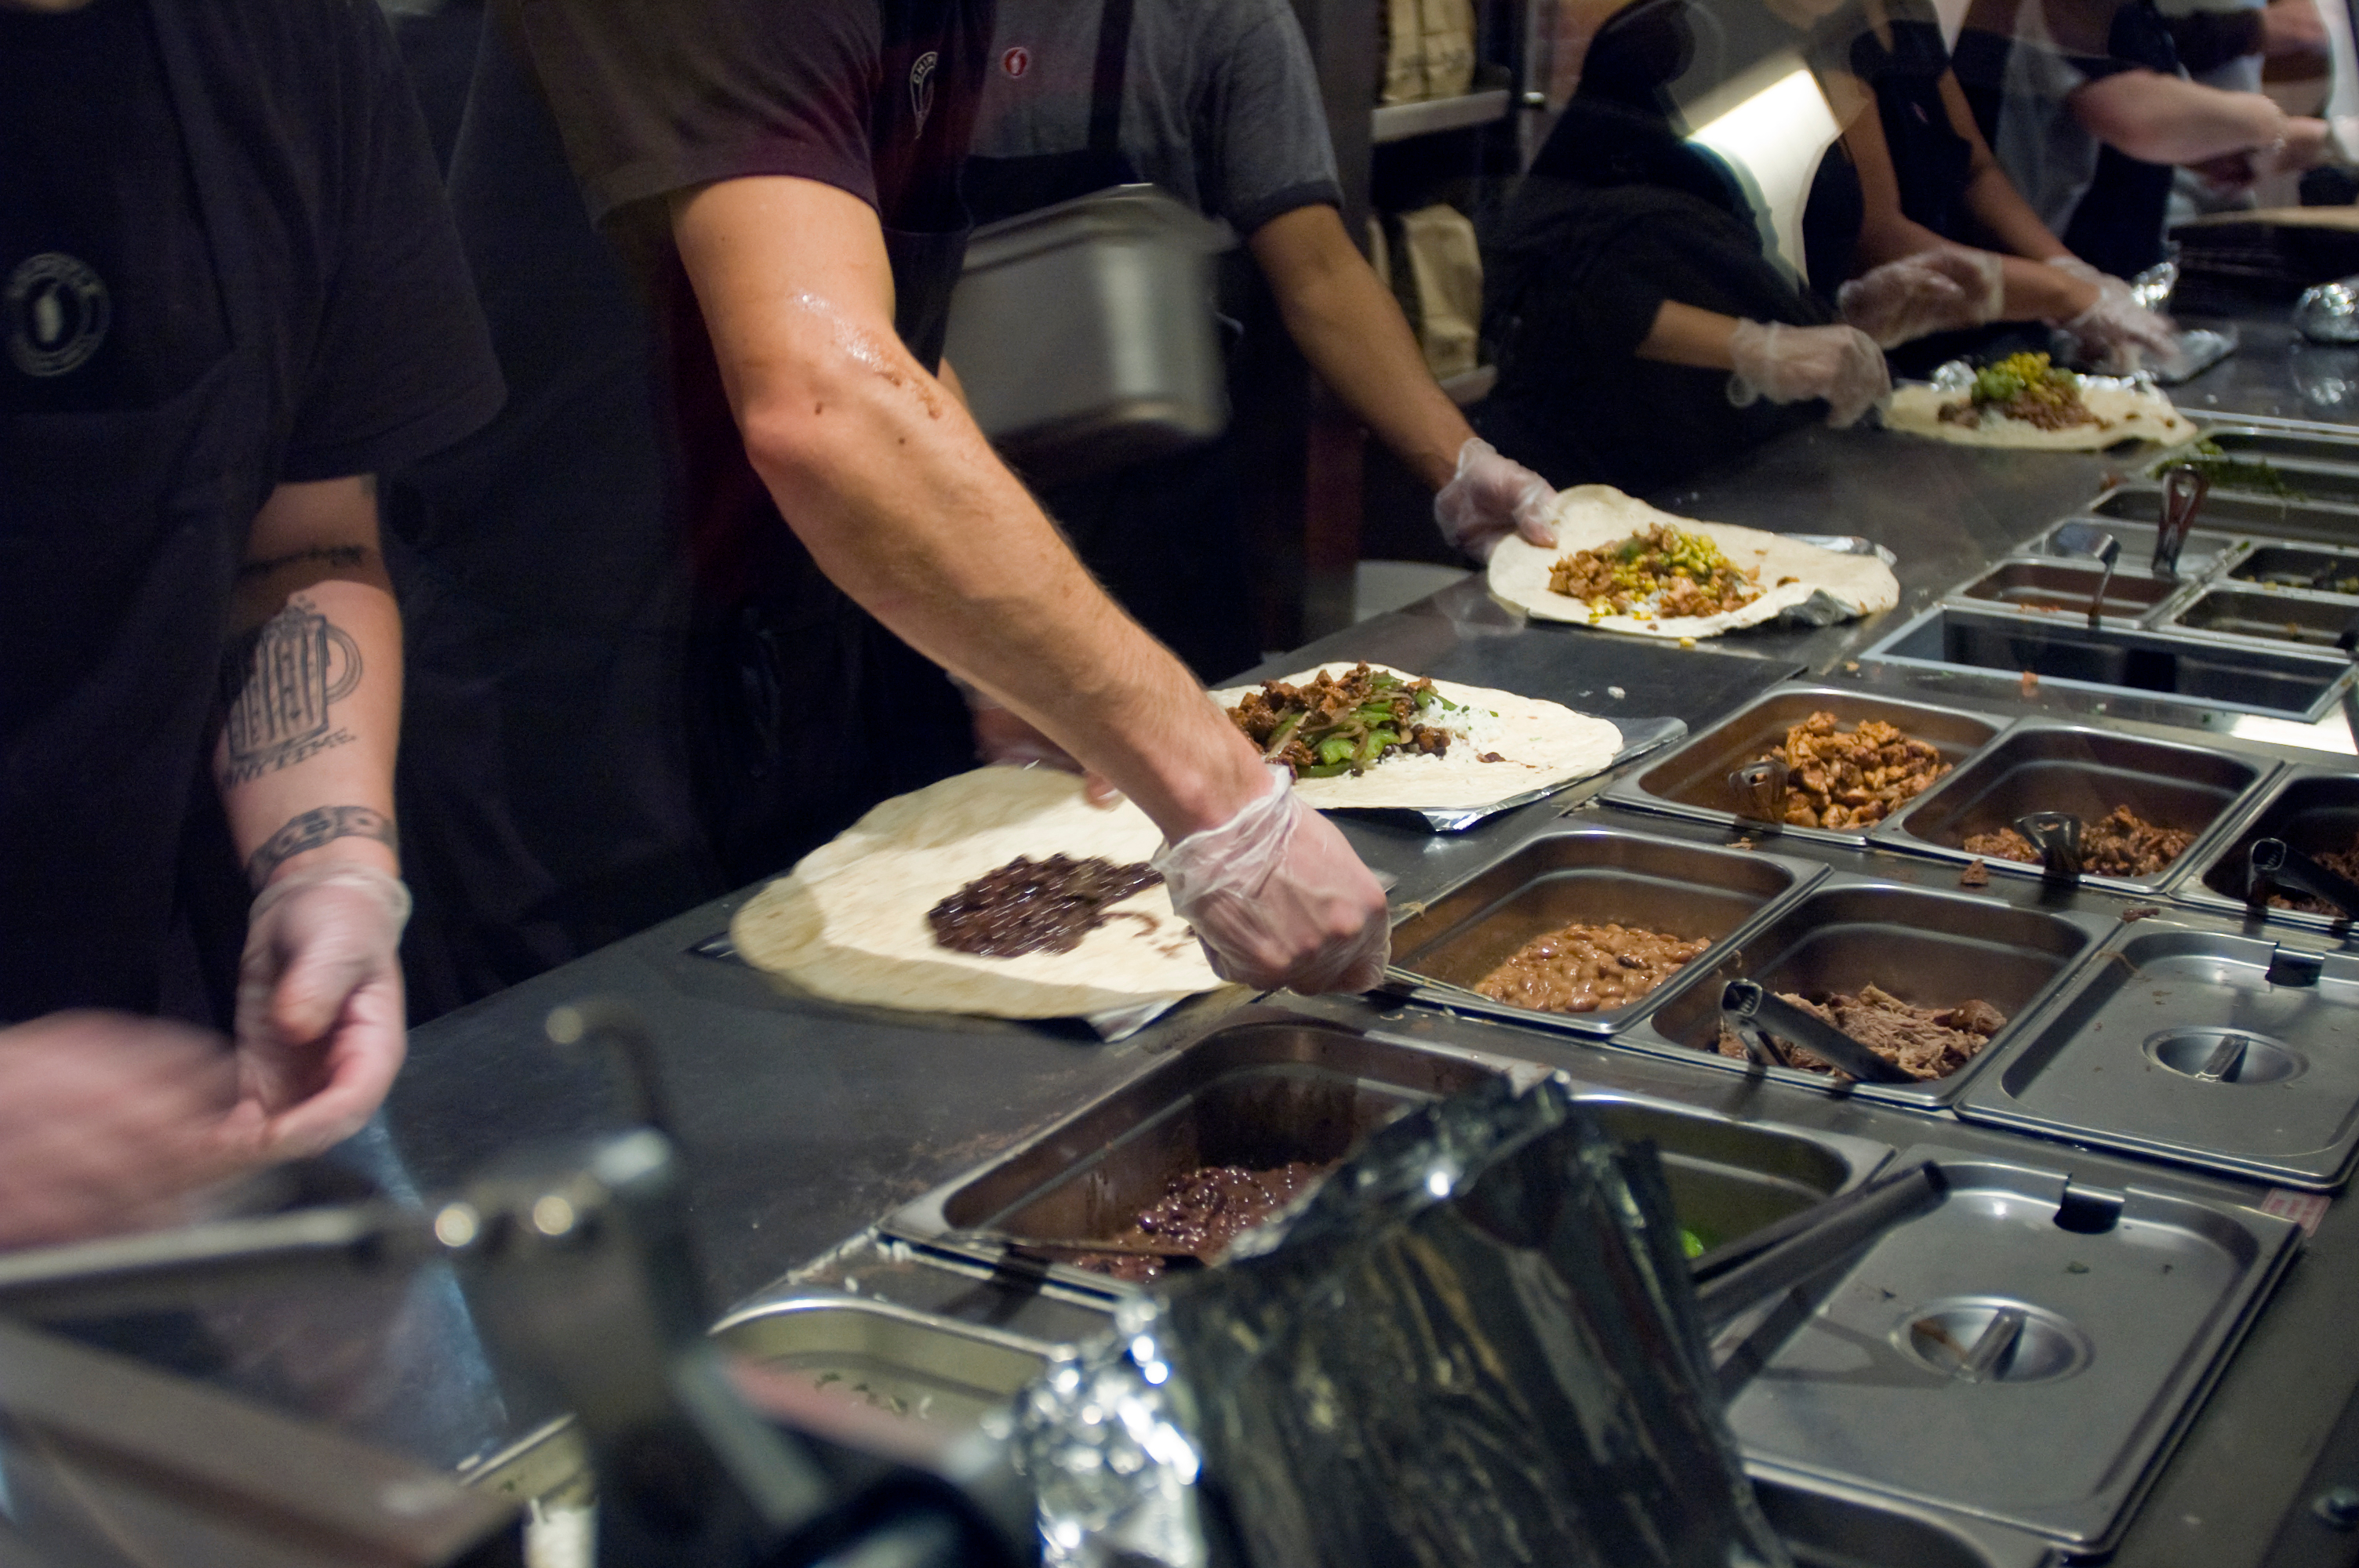 Chipotle workers scooping food onto tortillas at the counter.